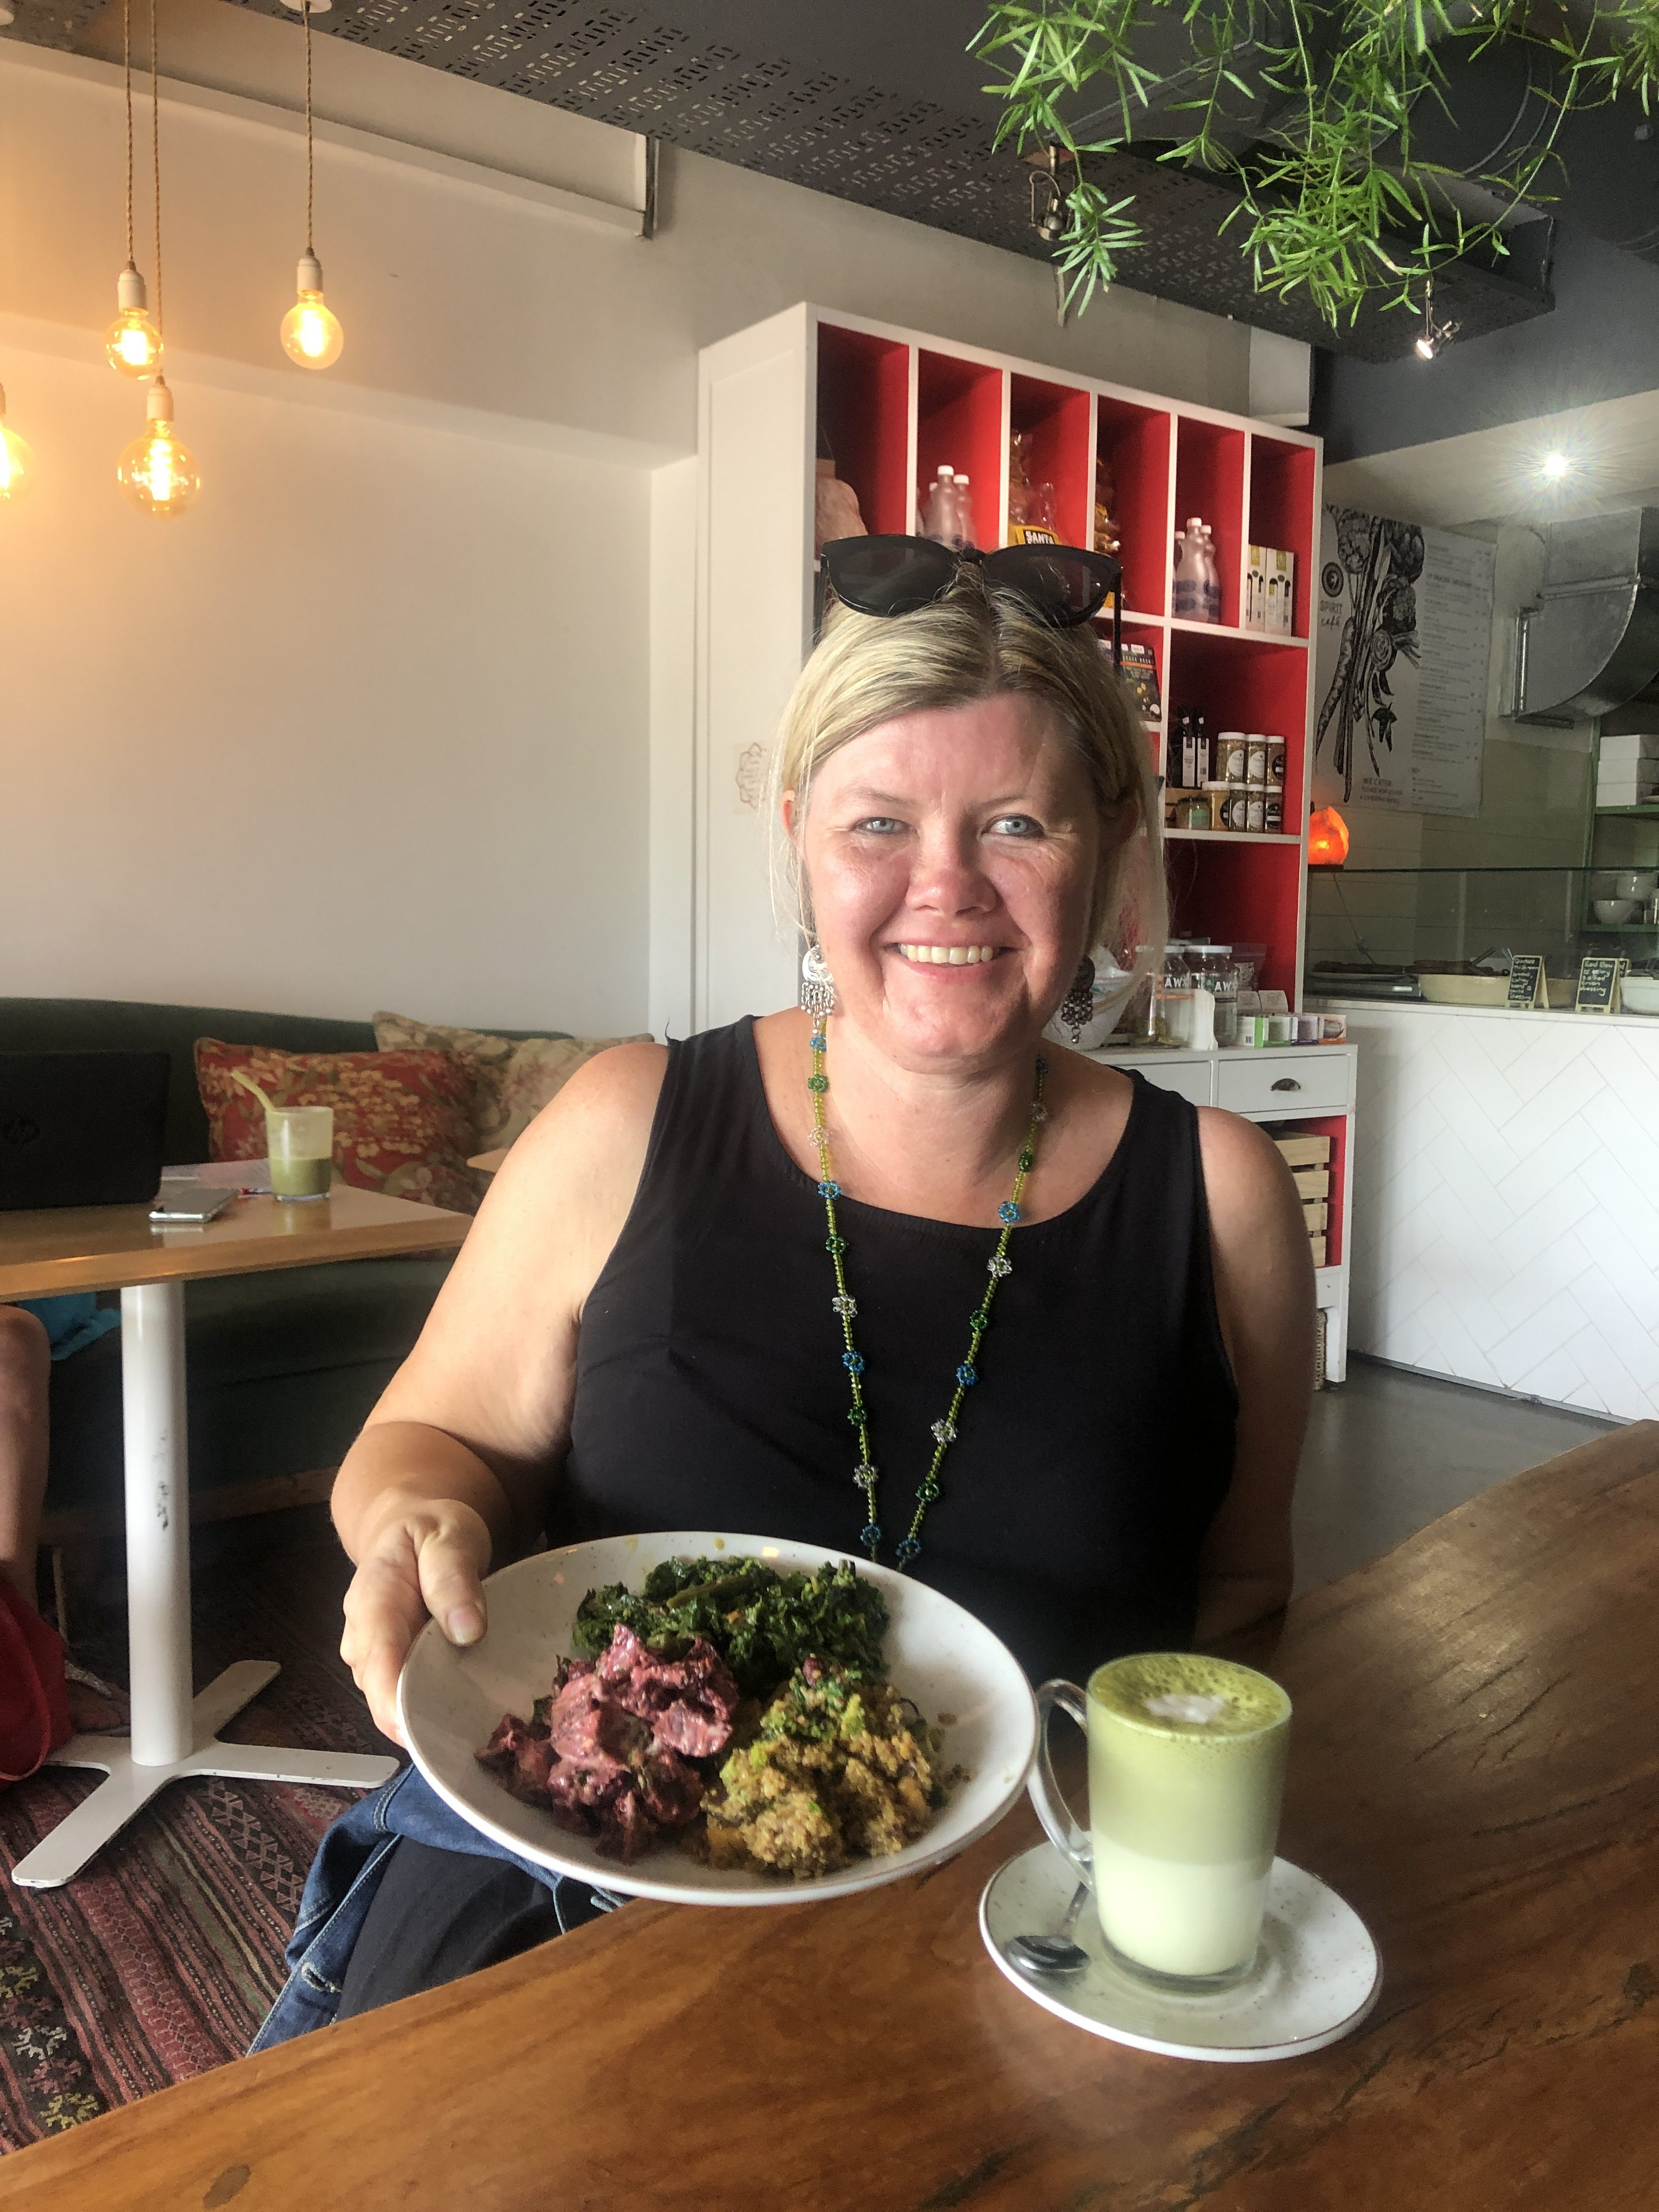 Spirt Cafe Constantia - highly recommended for fabulous salads